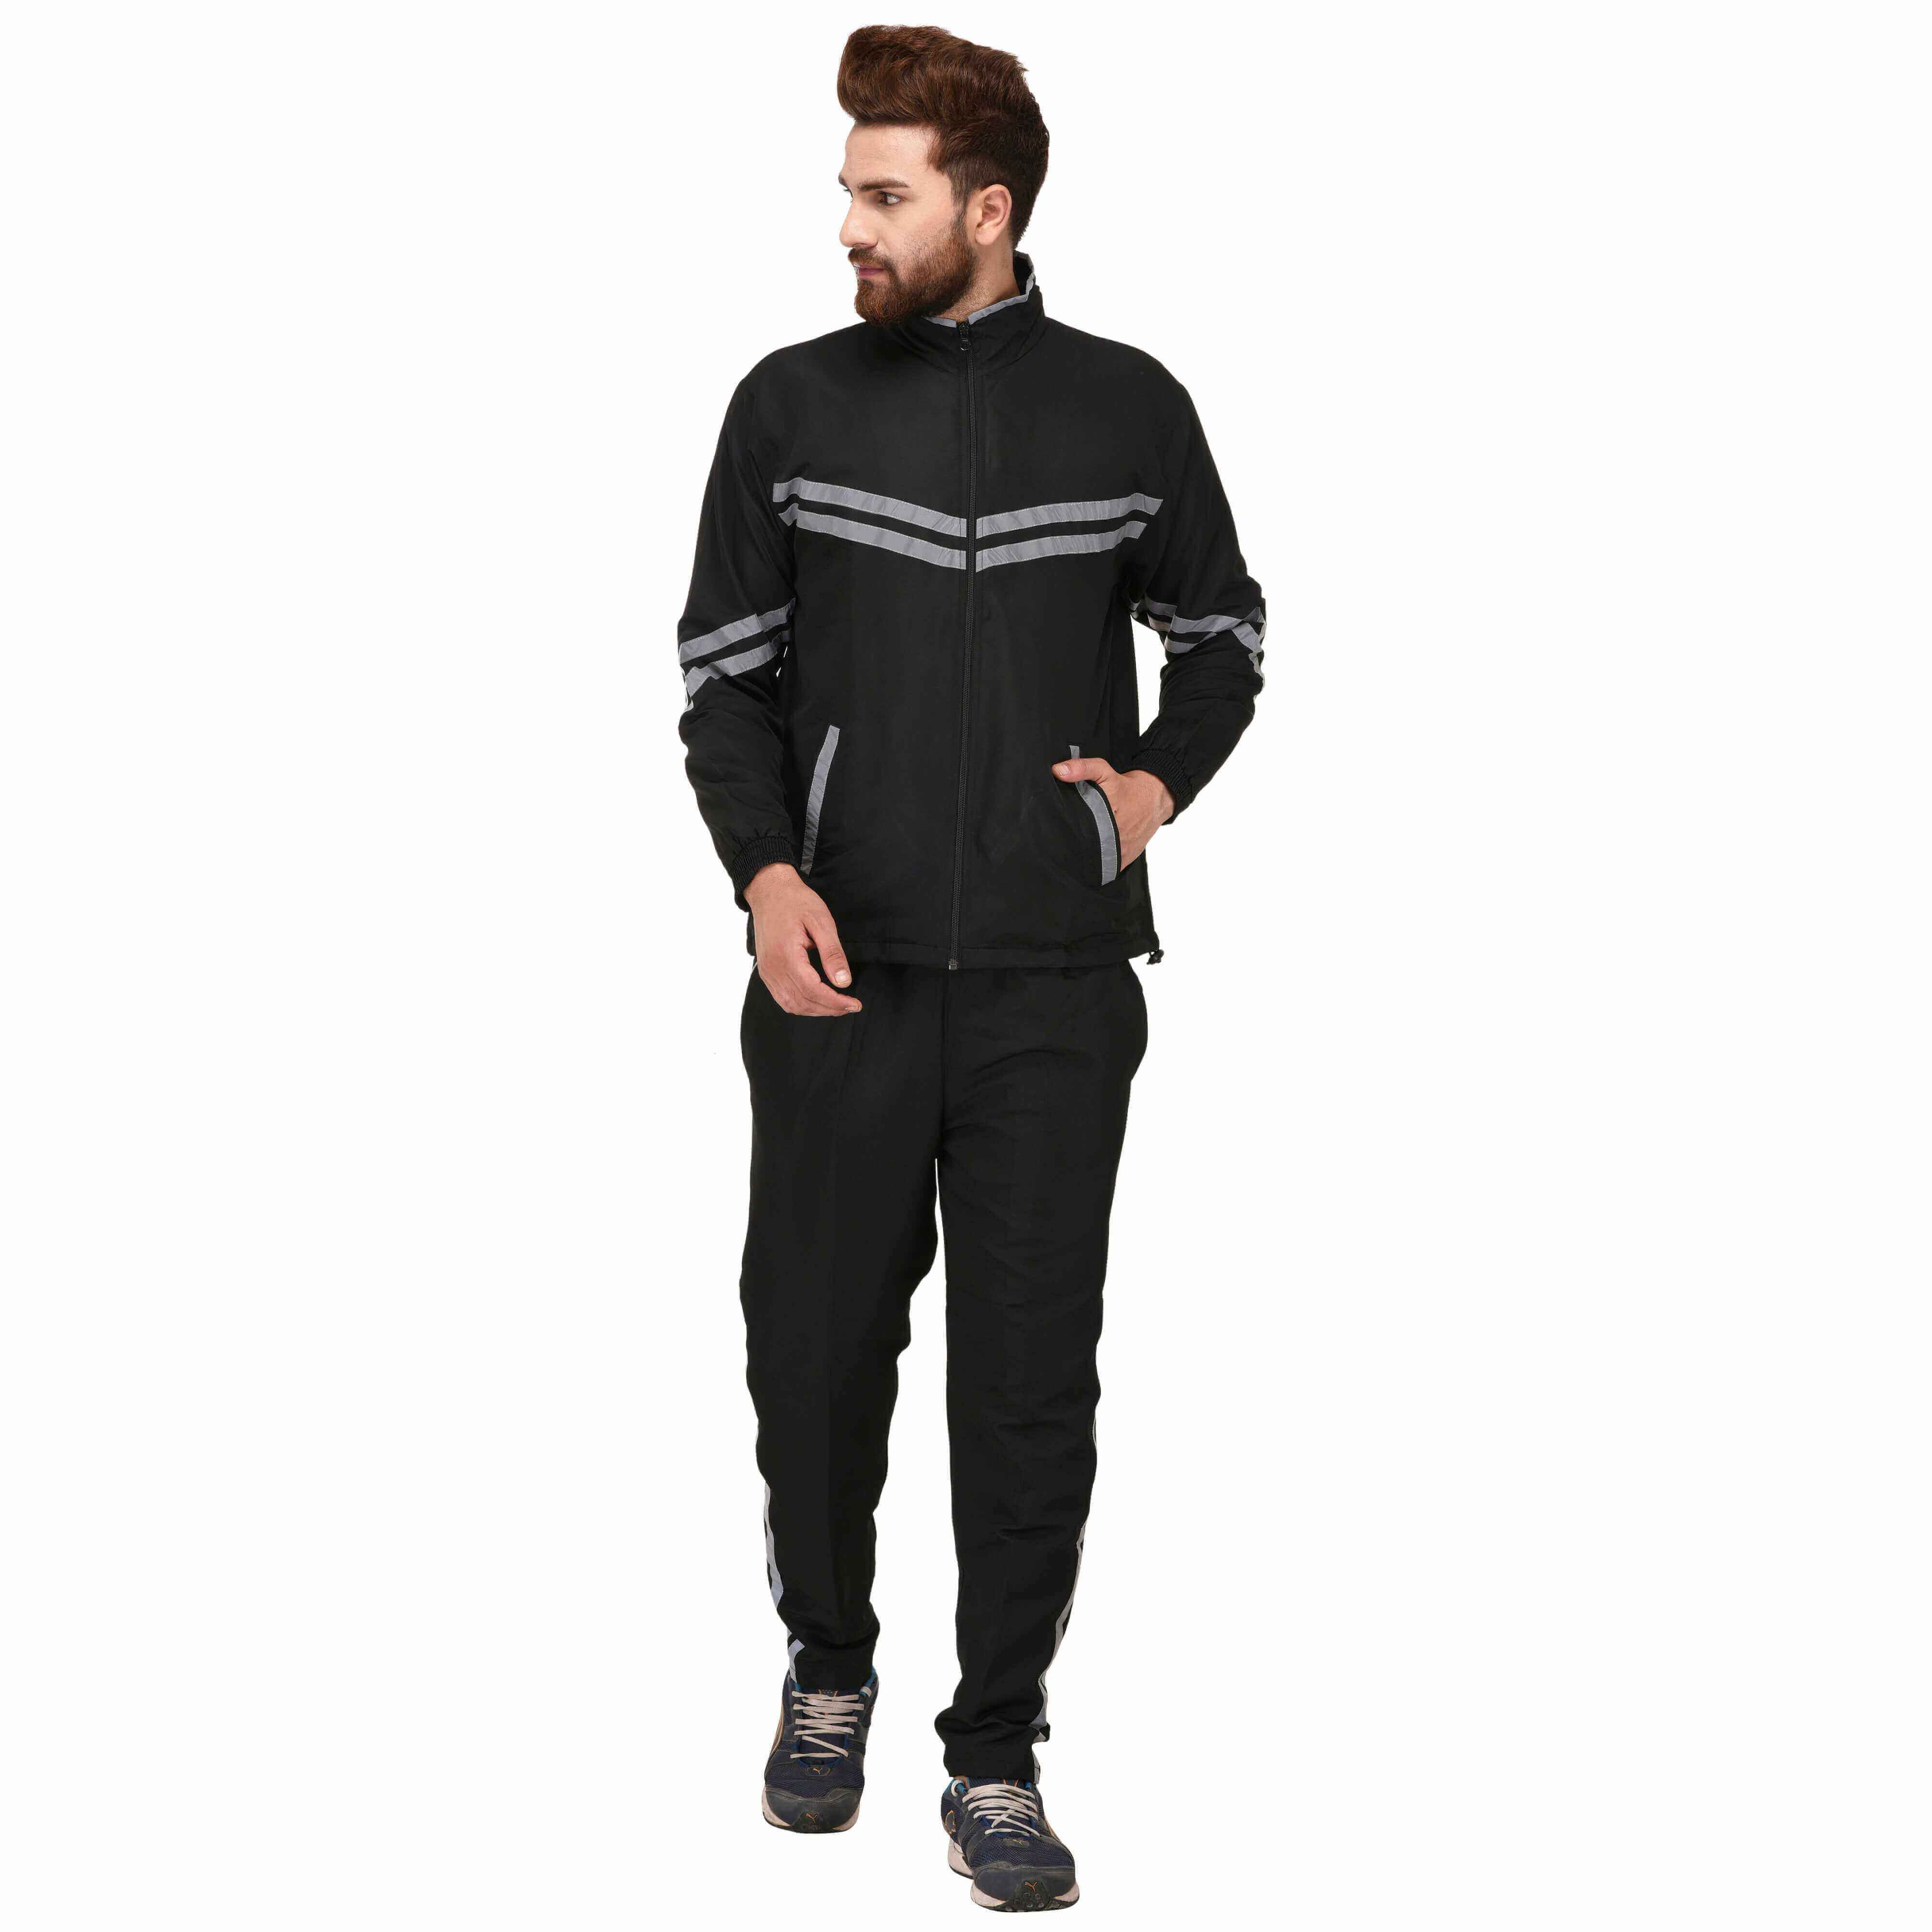 Grey Tracksuit Manufacturers in Noida